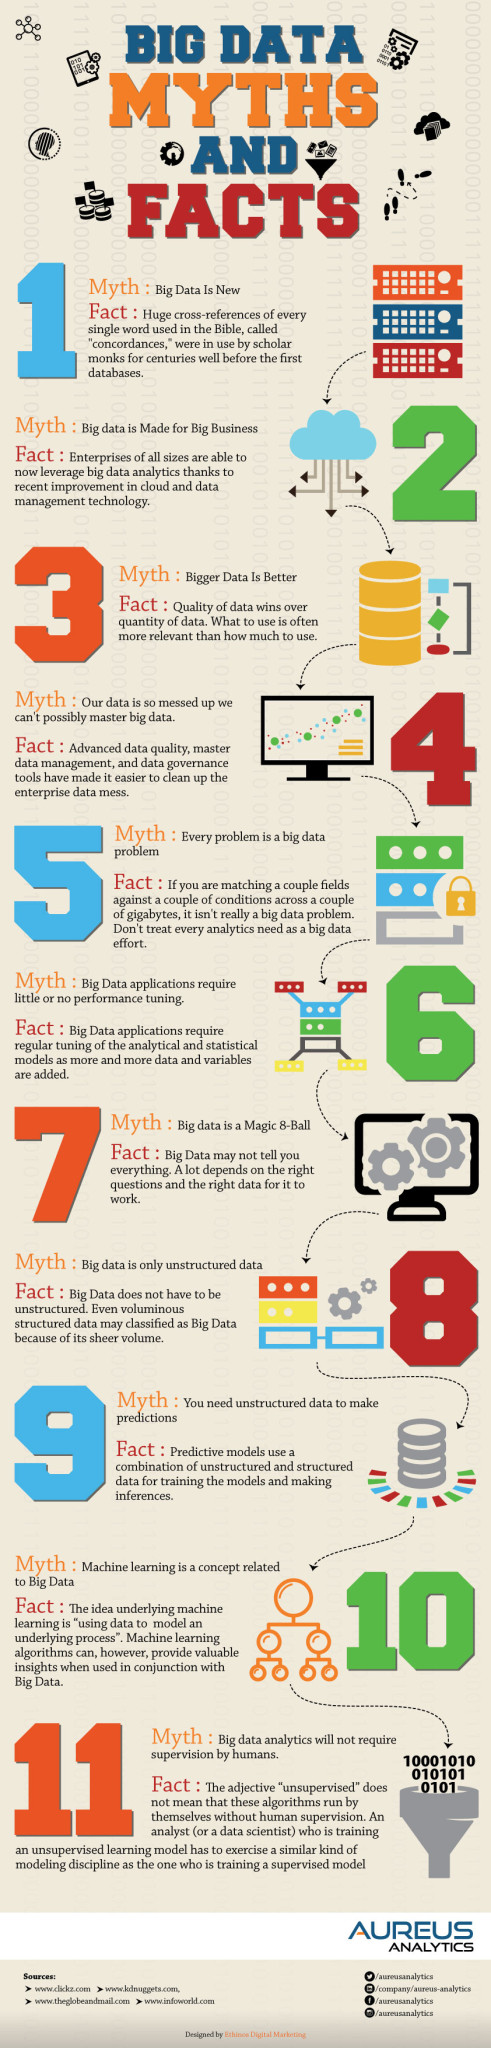 big data myths facts